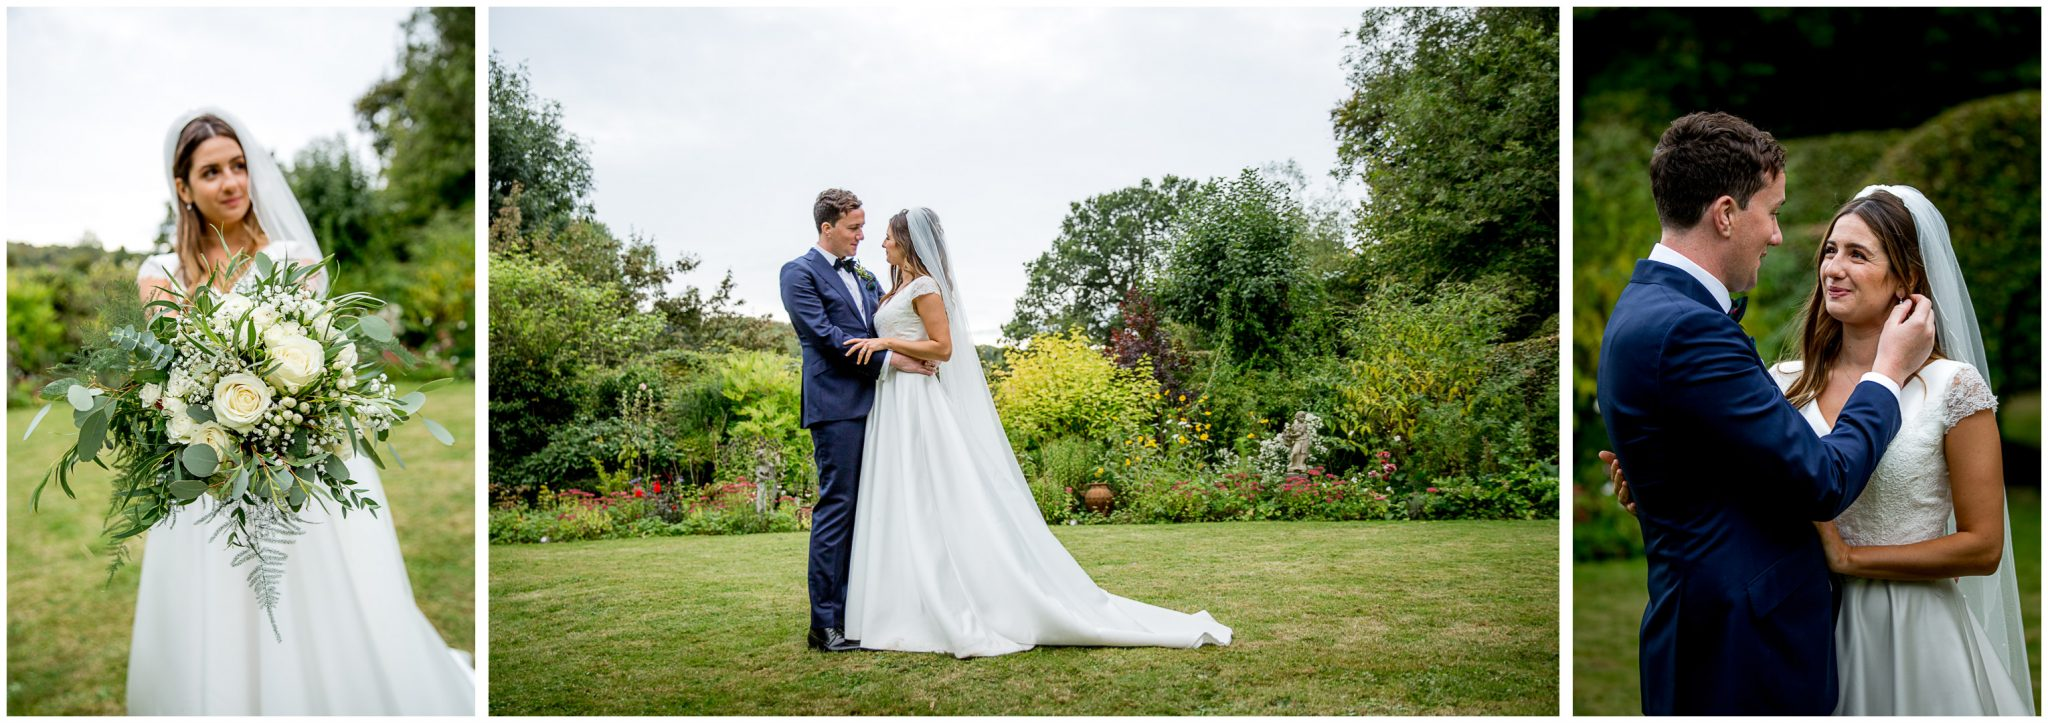 Couple in the garden wedding portraits